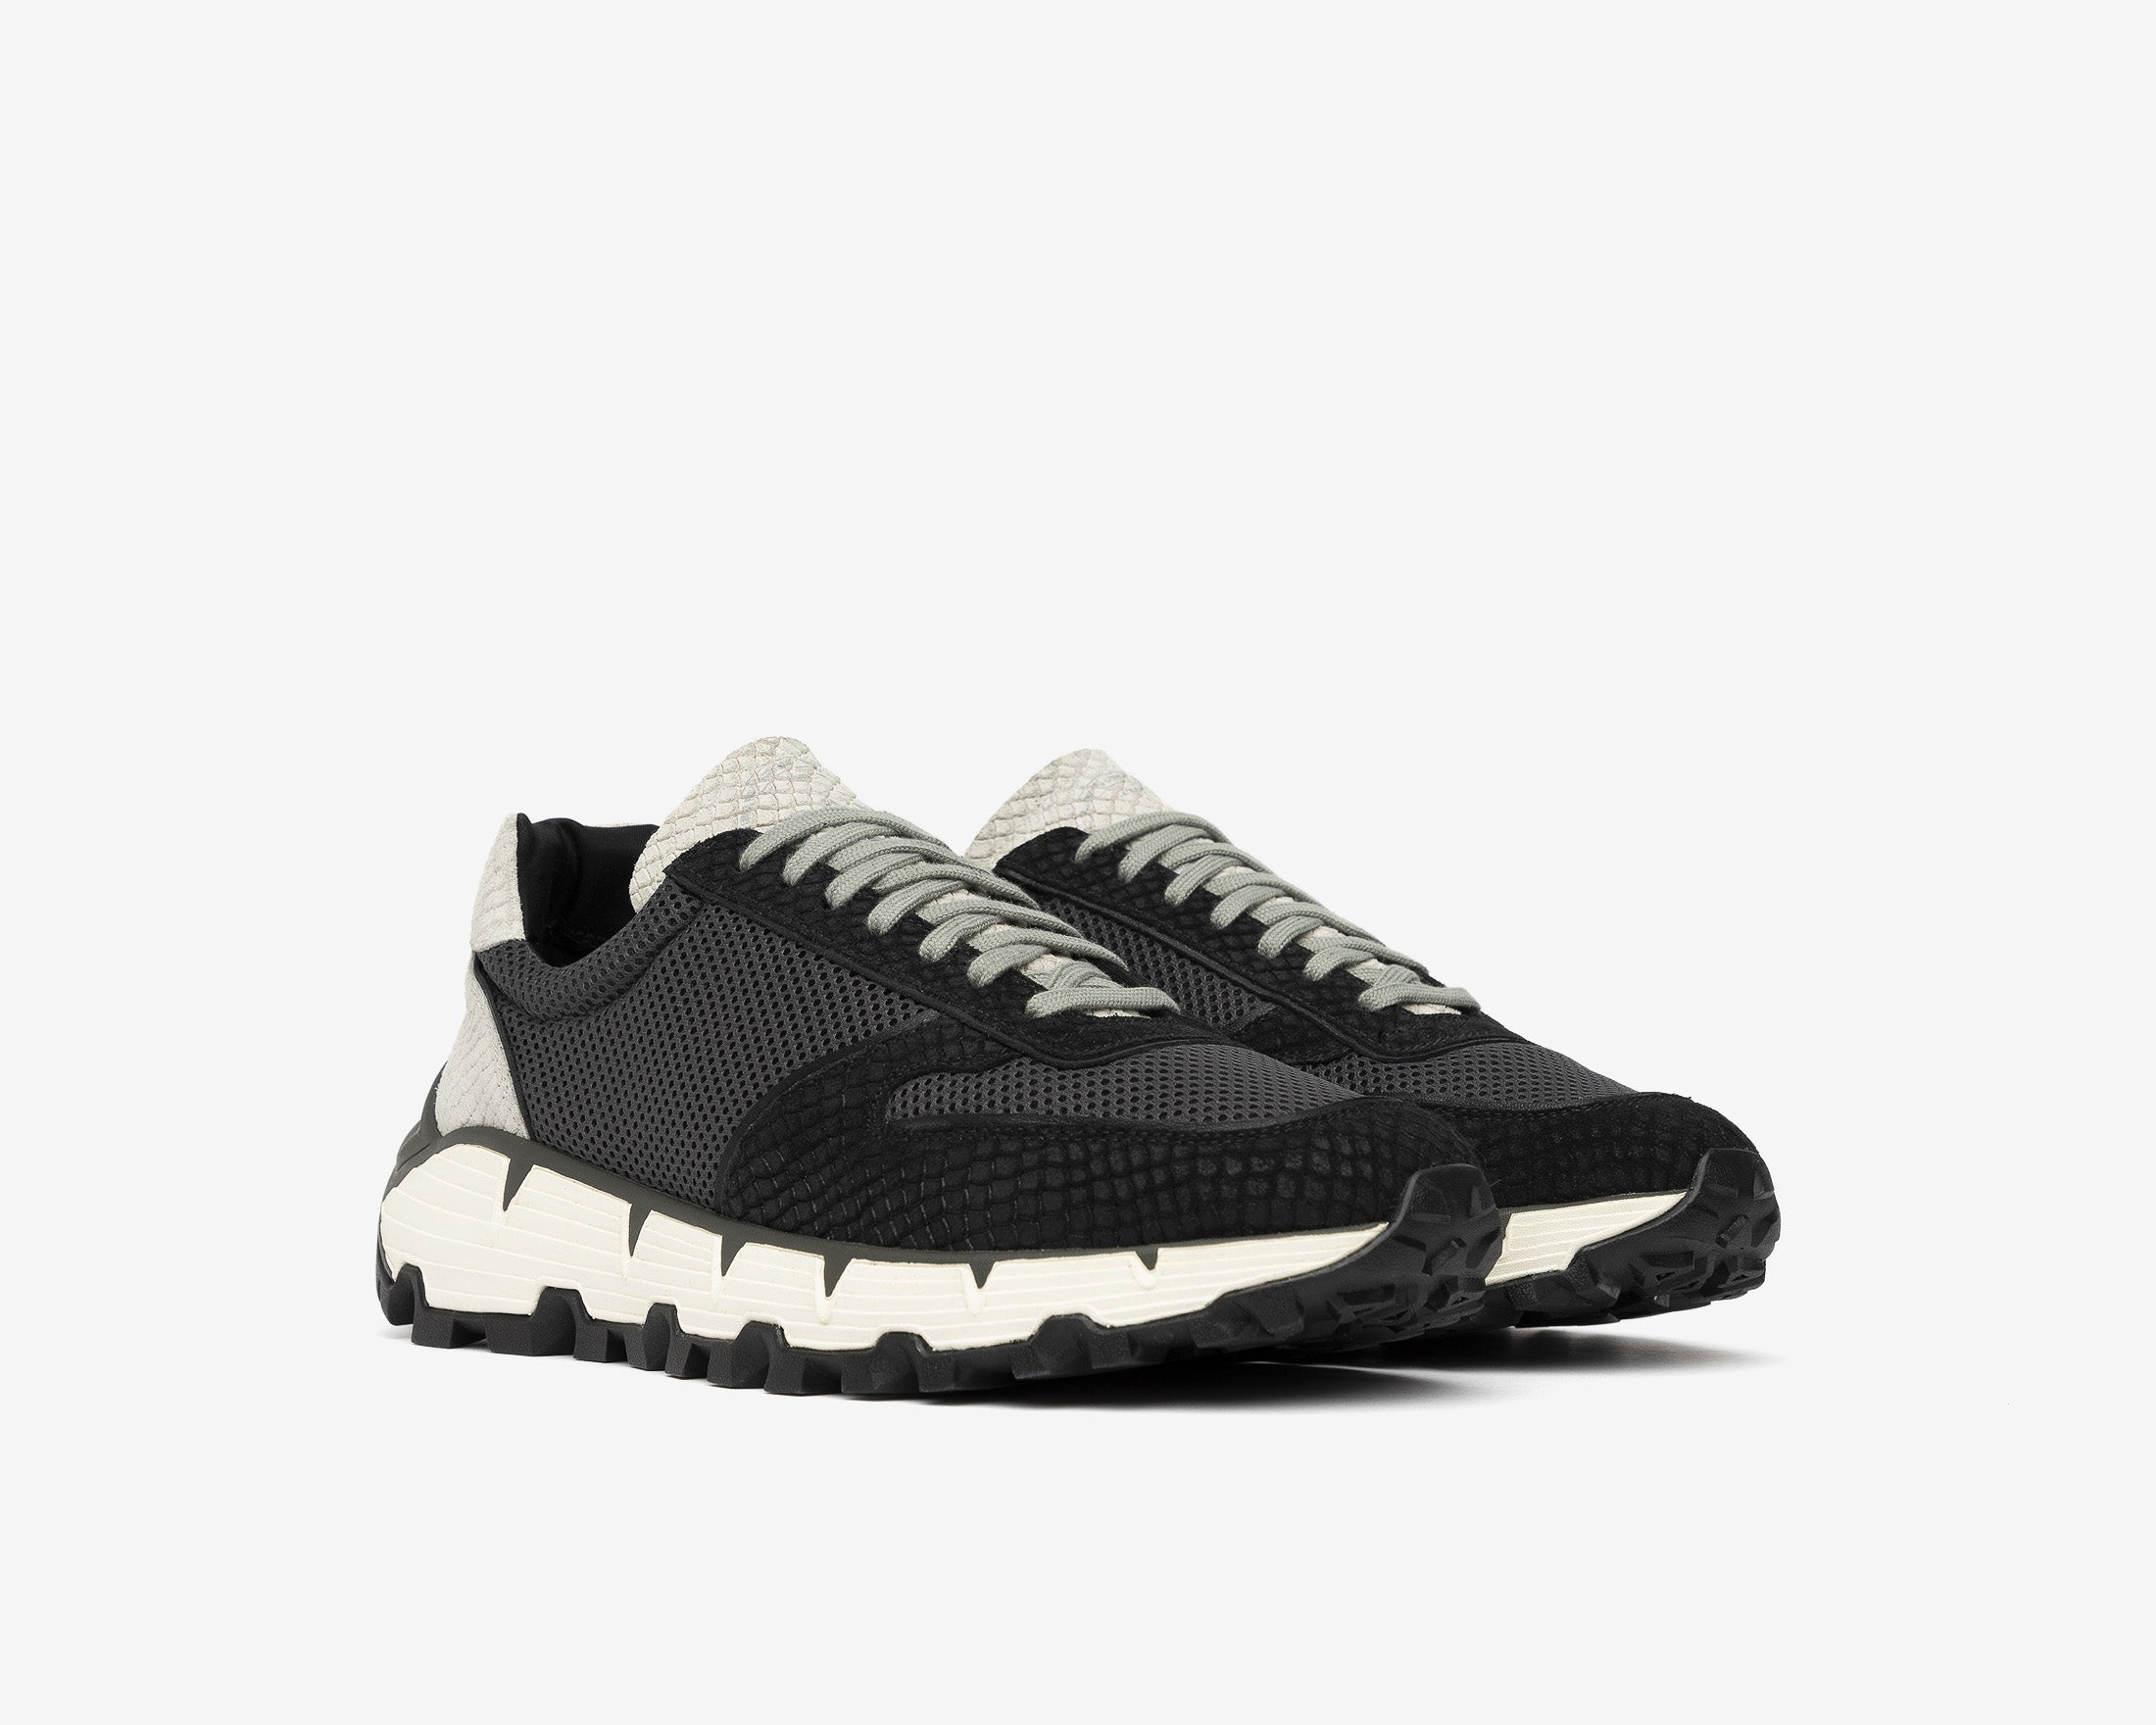 Jackson Chunky Sneaker in Black/Gray MultiSnake - Side